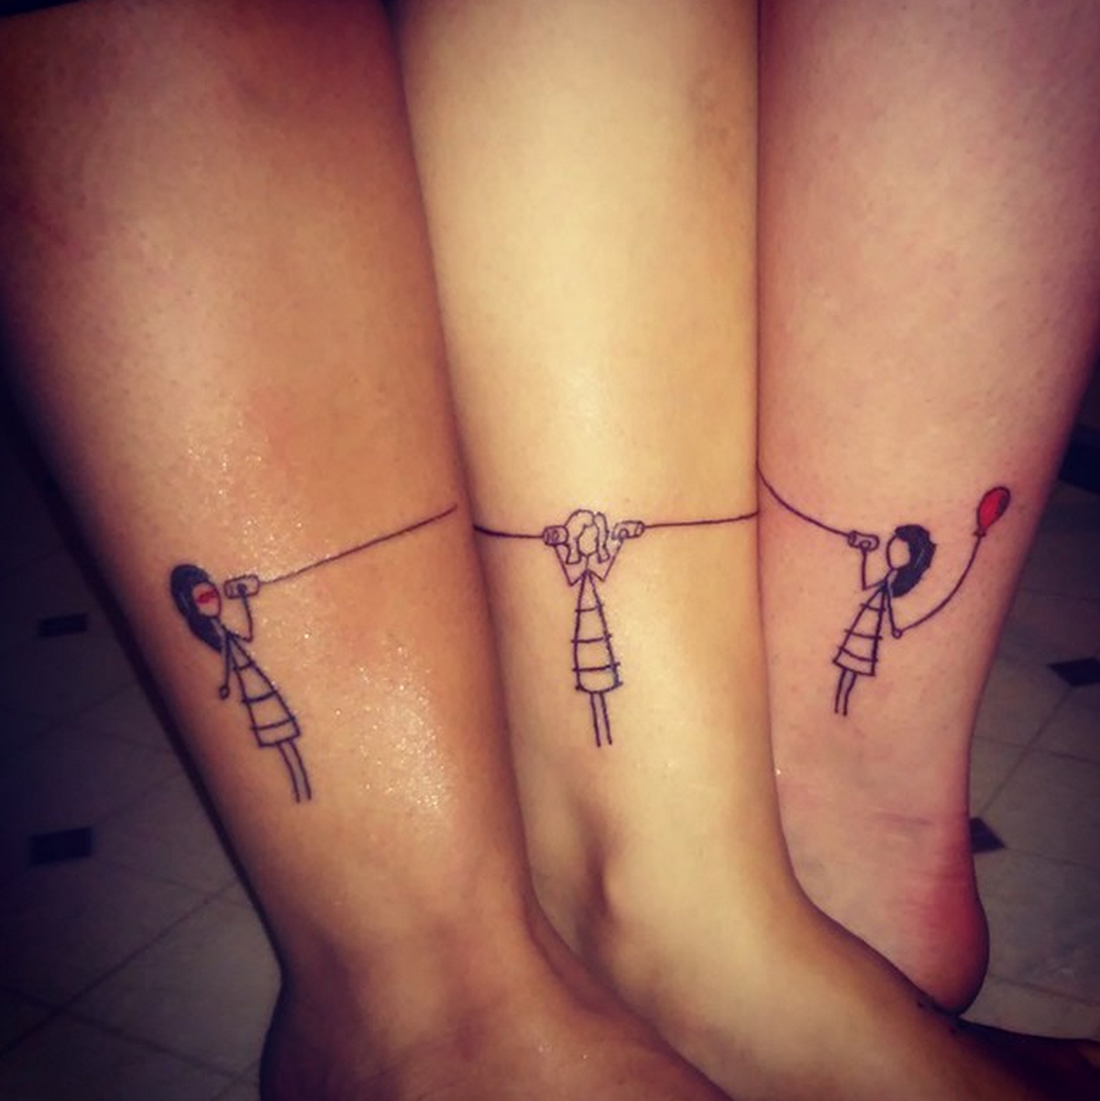 best friend tattoo - congruent: meaning different, yet the same ...